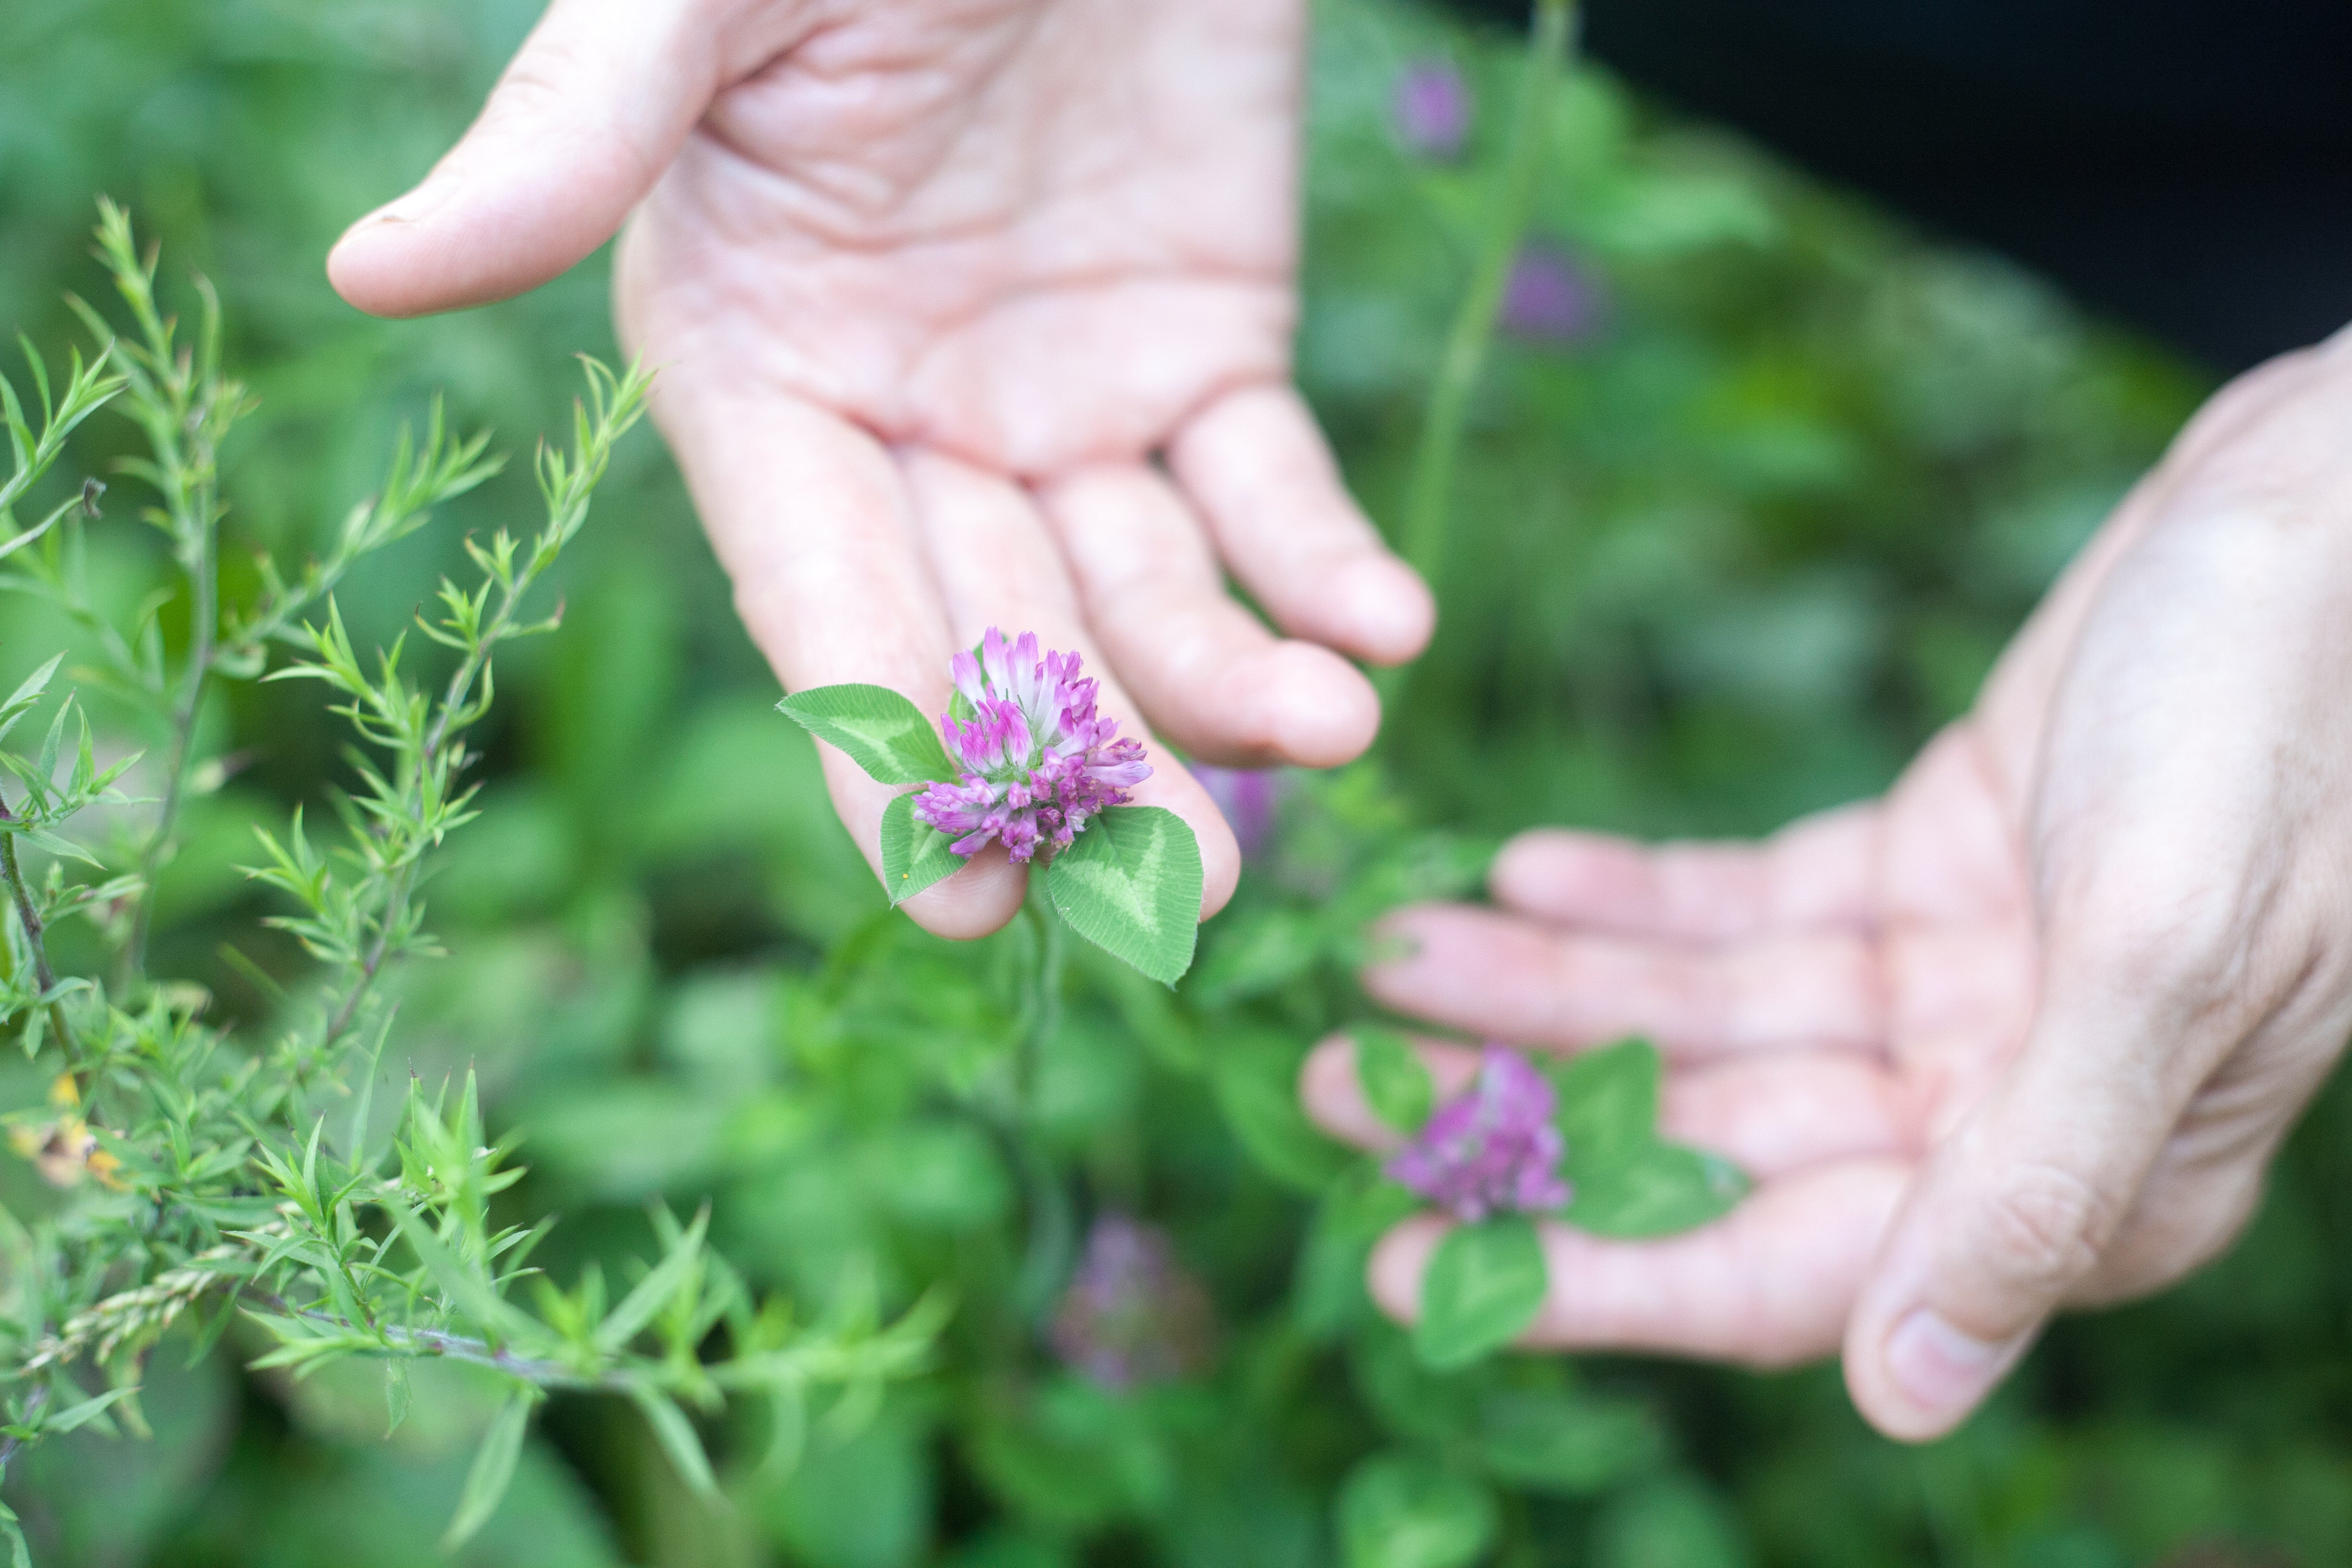 Each herb is harvested by hand at its peak potency